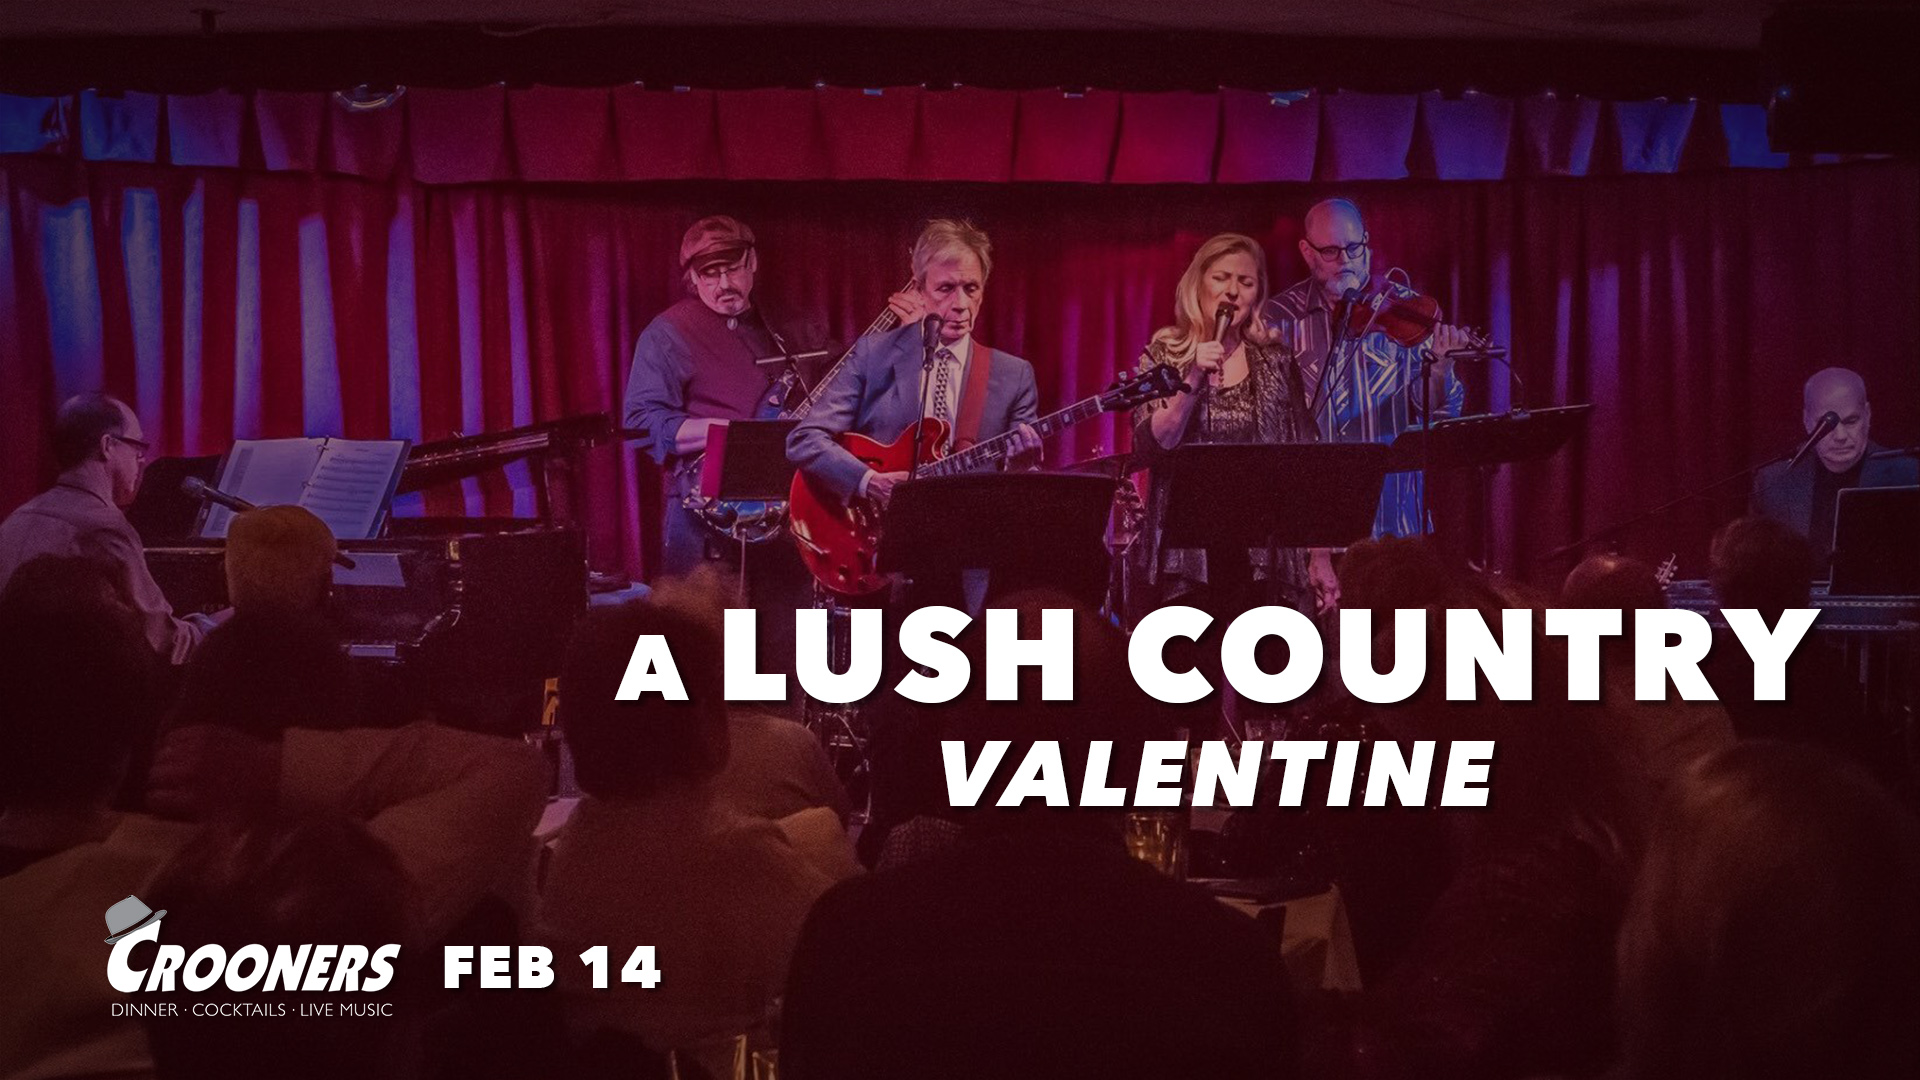 """A Lush Country Valentine - It's a Lush Country Valentine as this fine collection of """"A Prairie Home Companion"""" band alums and regulars (Prudence Johnson, Dan Chouinard, Gary Rue, Richard Kriehn, Joe Savage, Gary Raynor, and Peter Johnson) play classic country love songs of the hi-fi era, from the '40s and '60s."""